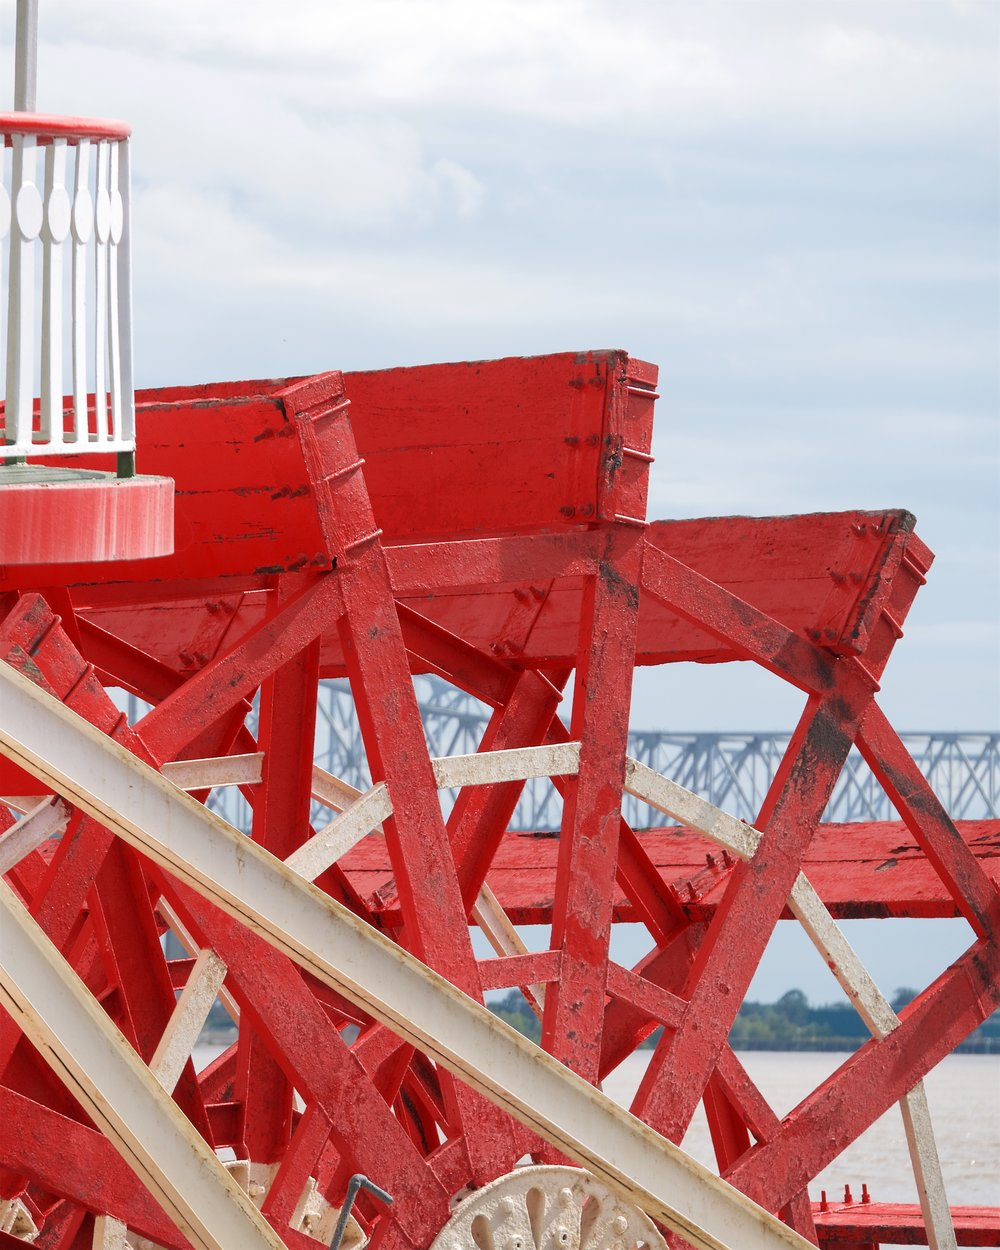 Paddlewheel of the Steamboat Natchez